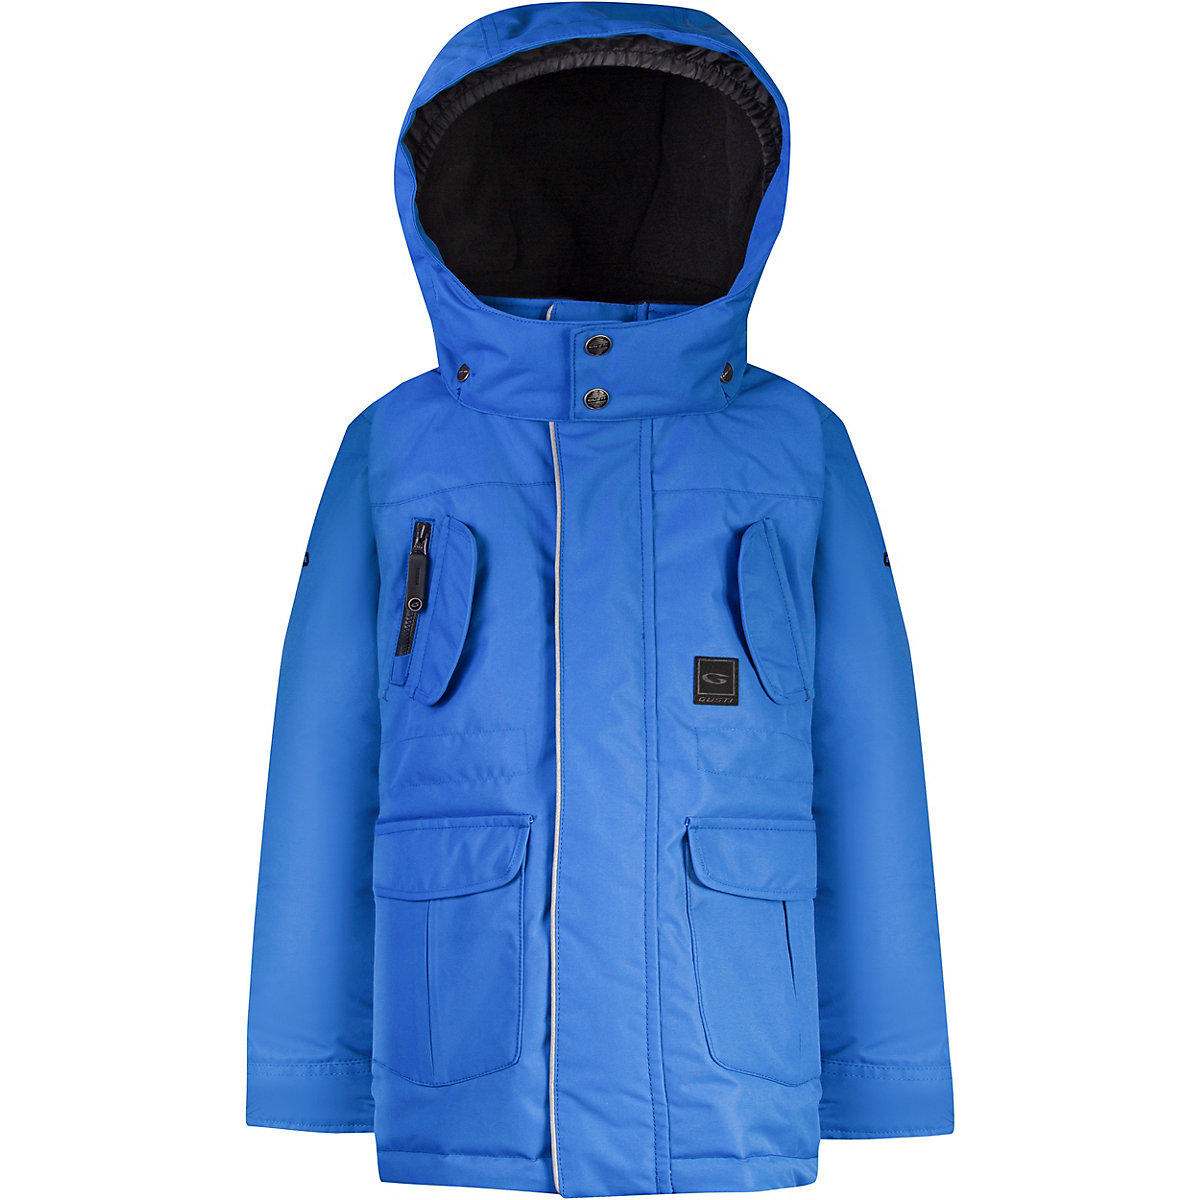 GUSTI Down & Parkas 9512002 jacket for girls winter outerwear children jackets boys clothing icebear 2018 new men s winter jacket warm detachable hat male short coat fashion casual apparel man brand clothing mwd18813d